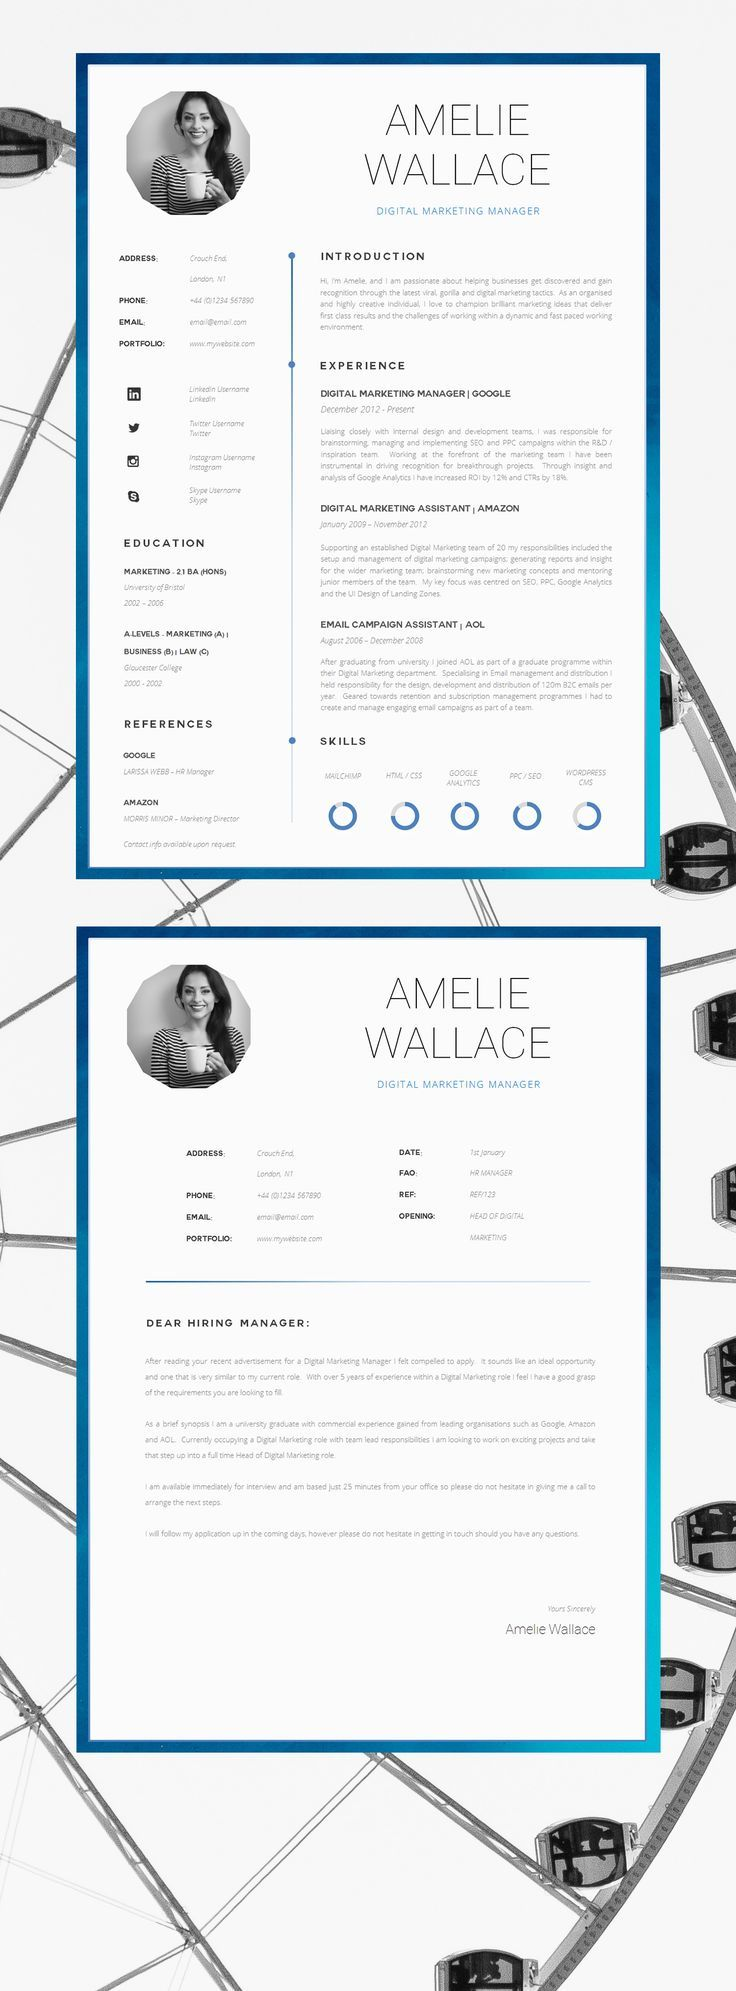 Best 25 cover letter example ideas on pinterest resume builder best 25 cover letter example ideas on pinterest resume builder template resume work and resume madrichimfo Choice Image